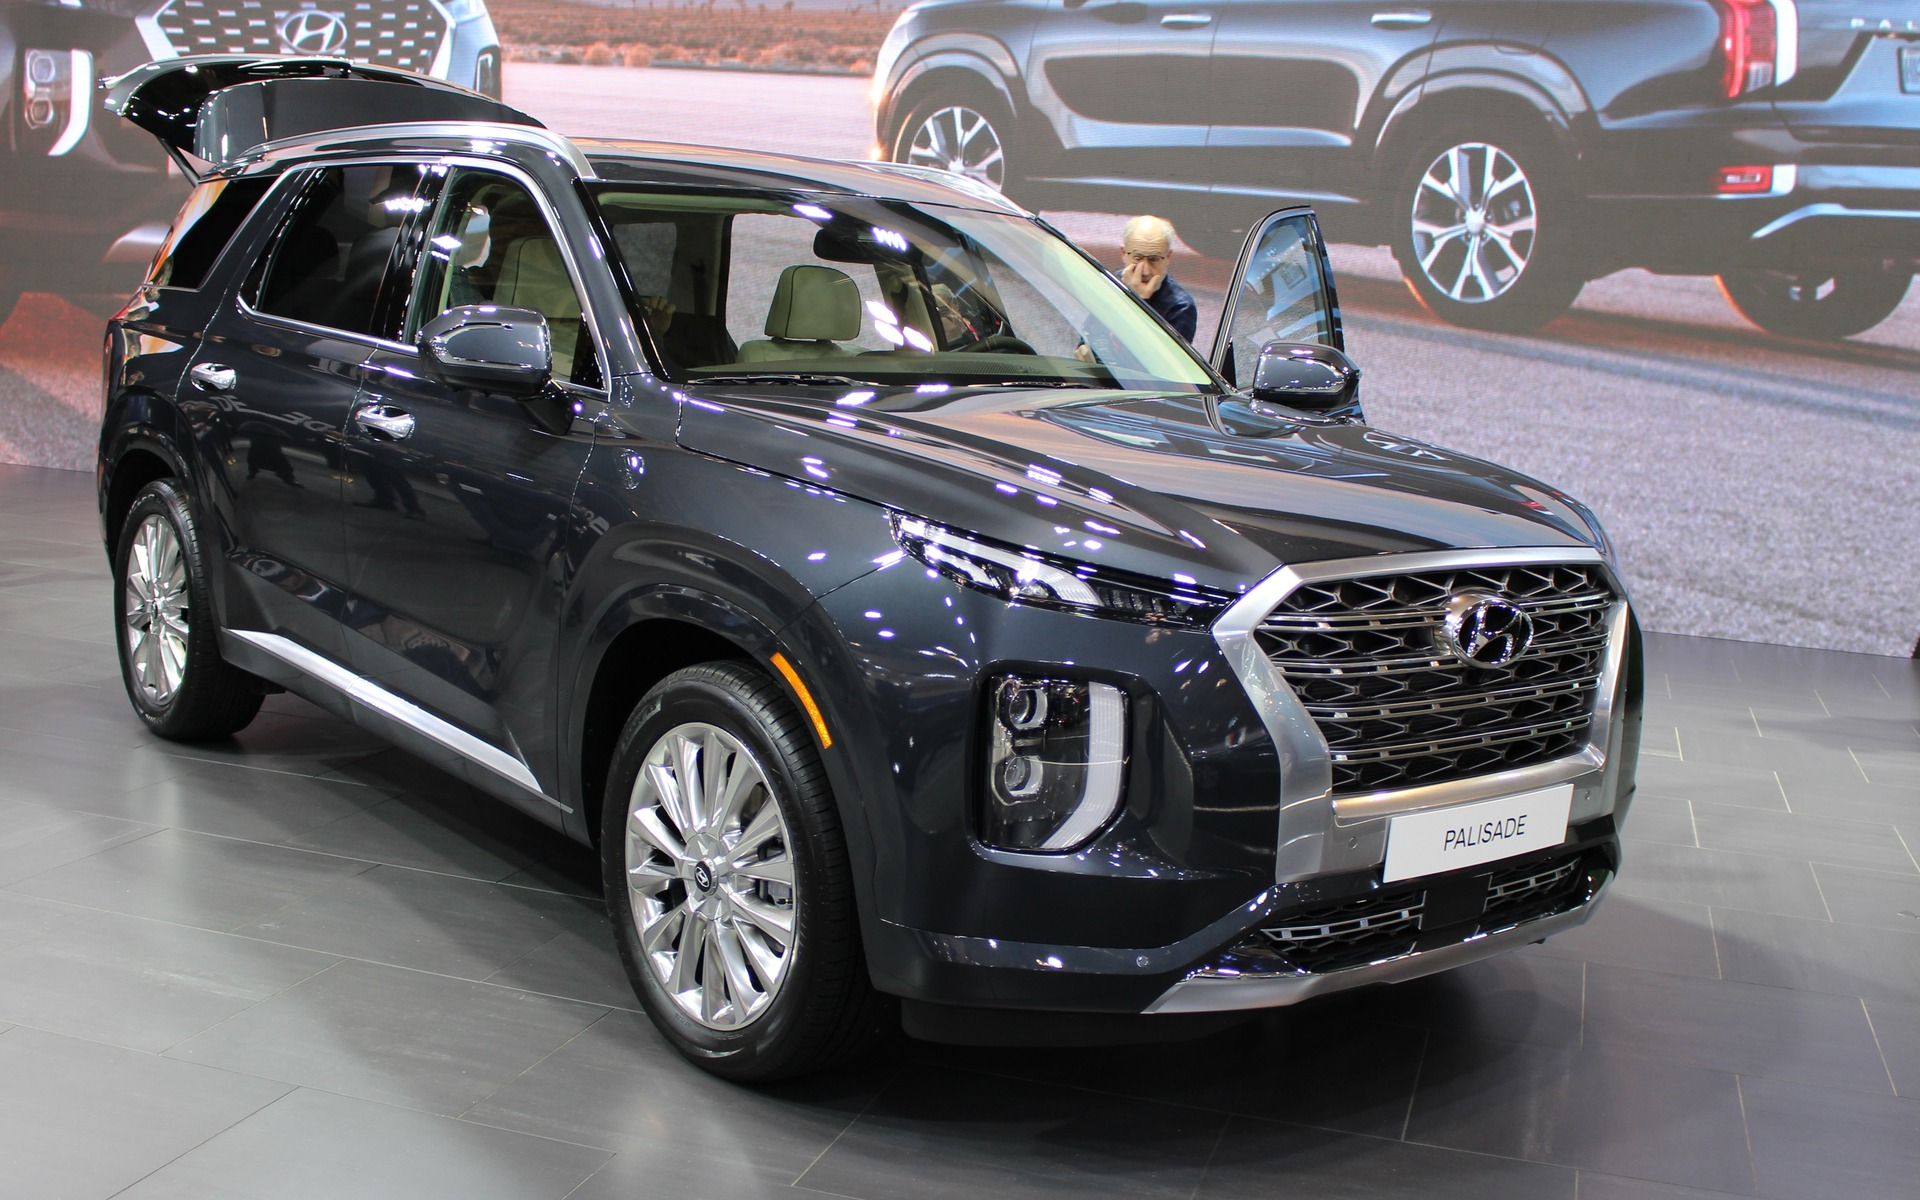 2020 Hyundai Palisade Makes Canadian Premiere In Toronto The Car Guide